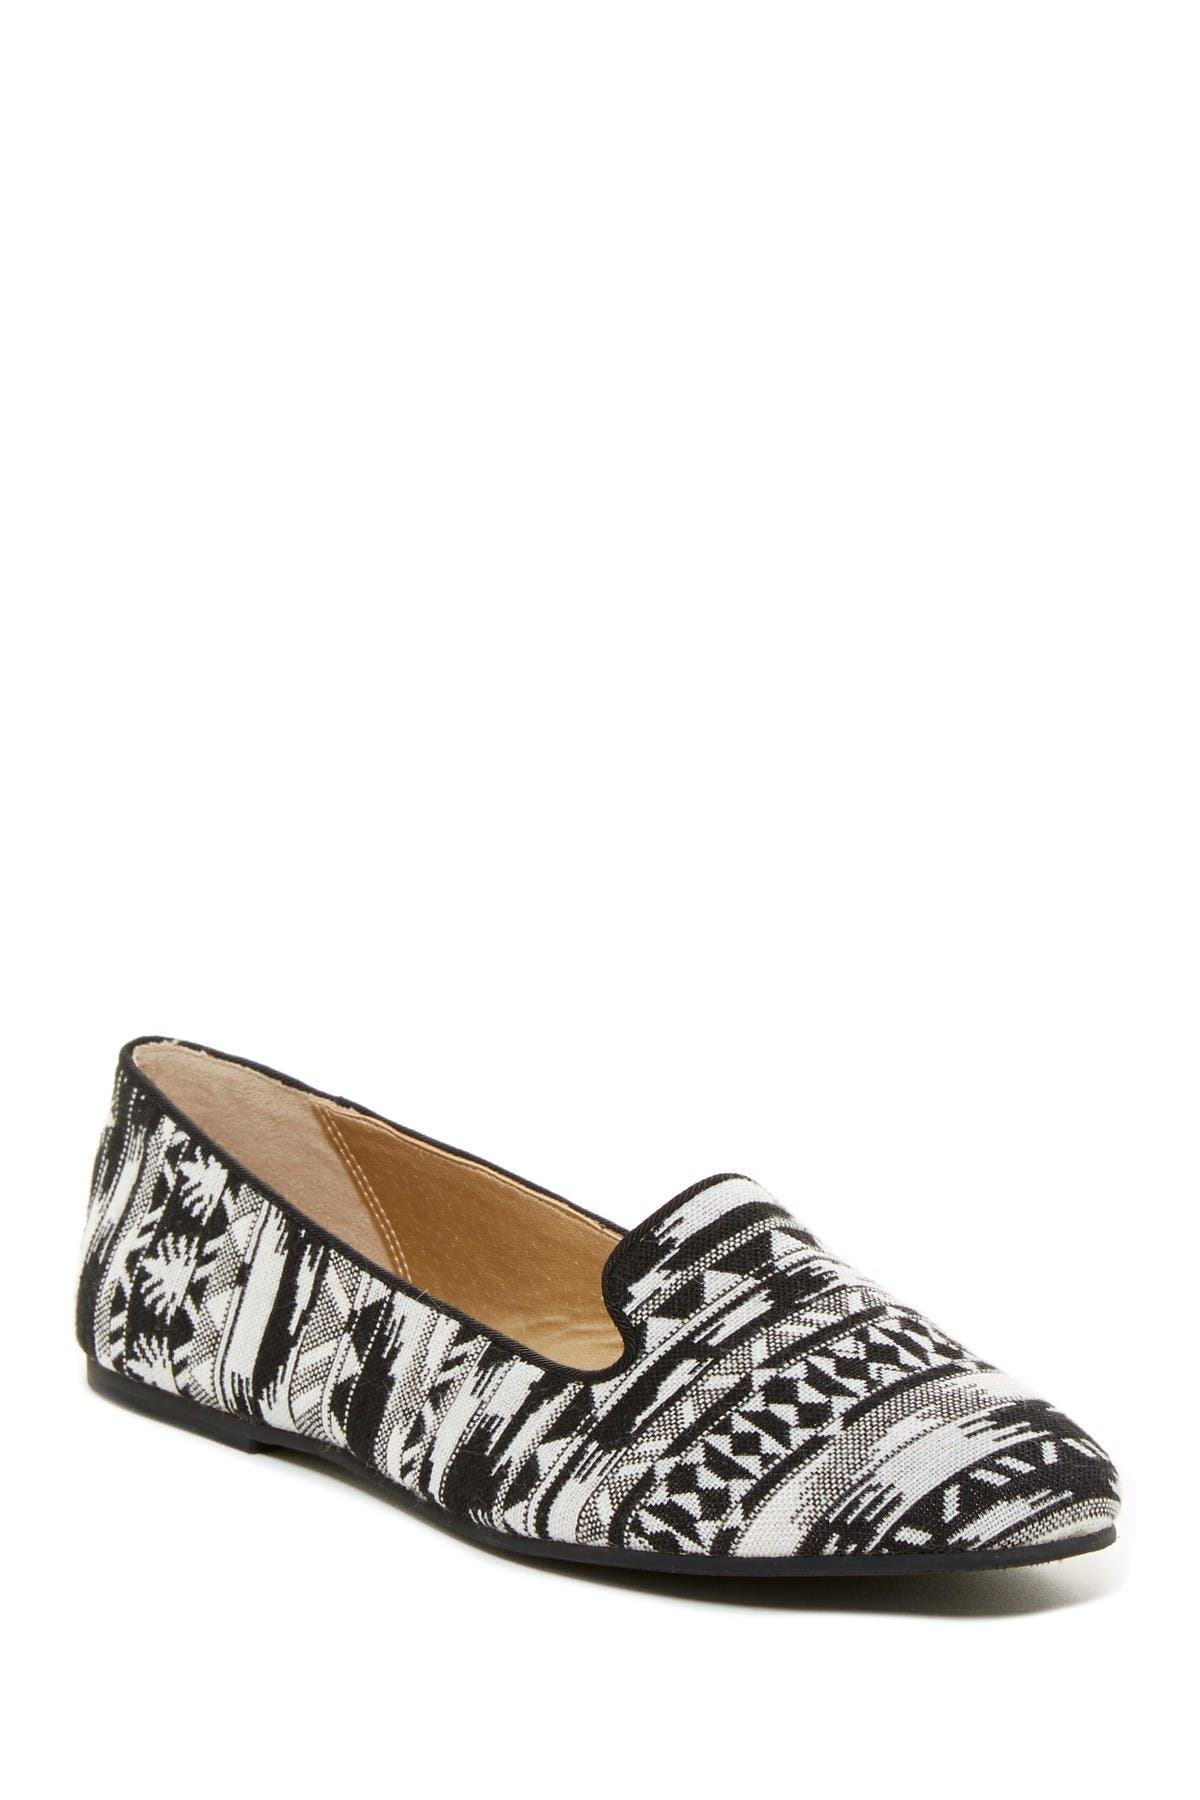 Image of Abound Kiley Loafer - Wide Width Available